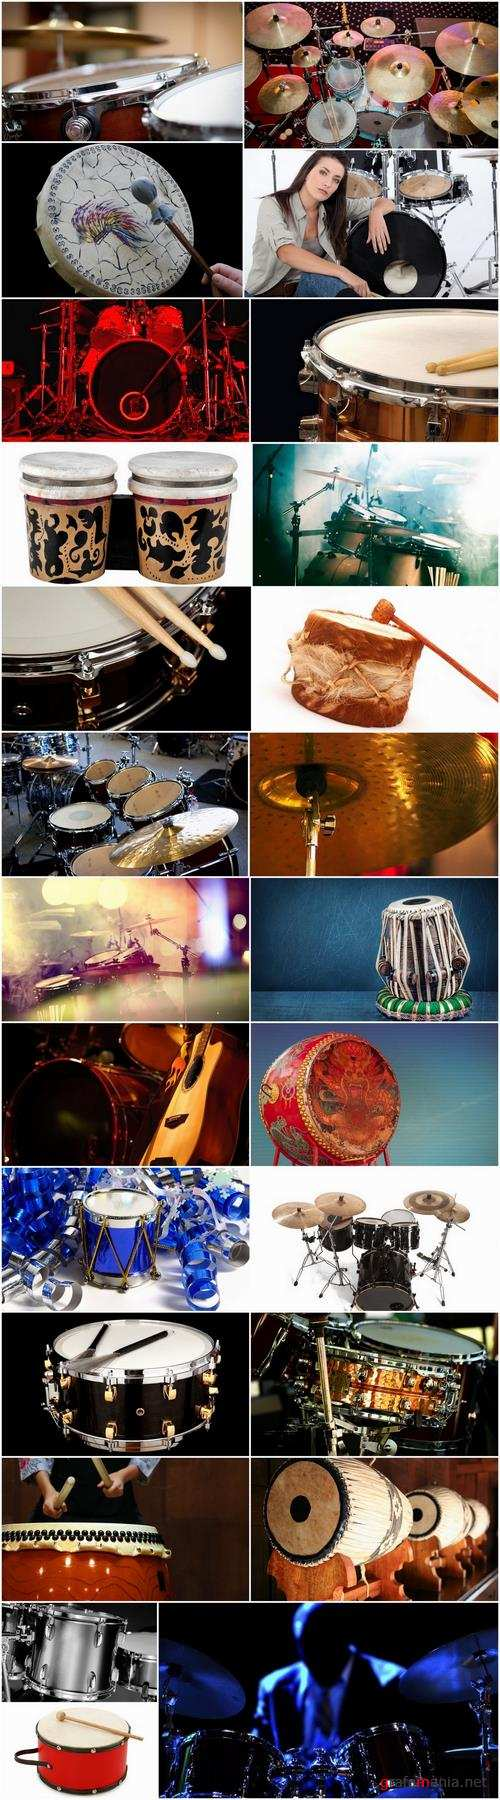 Musical instrument drum drummer stick 25 HQ Jpeg